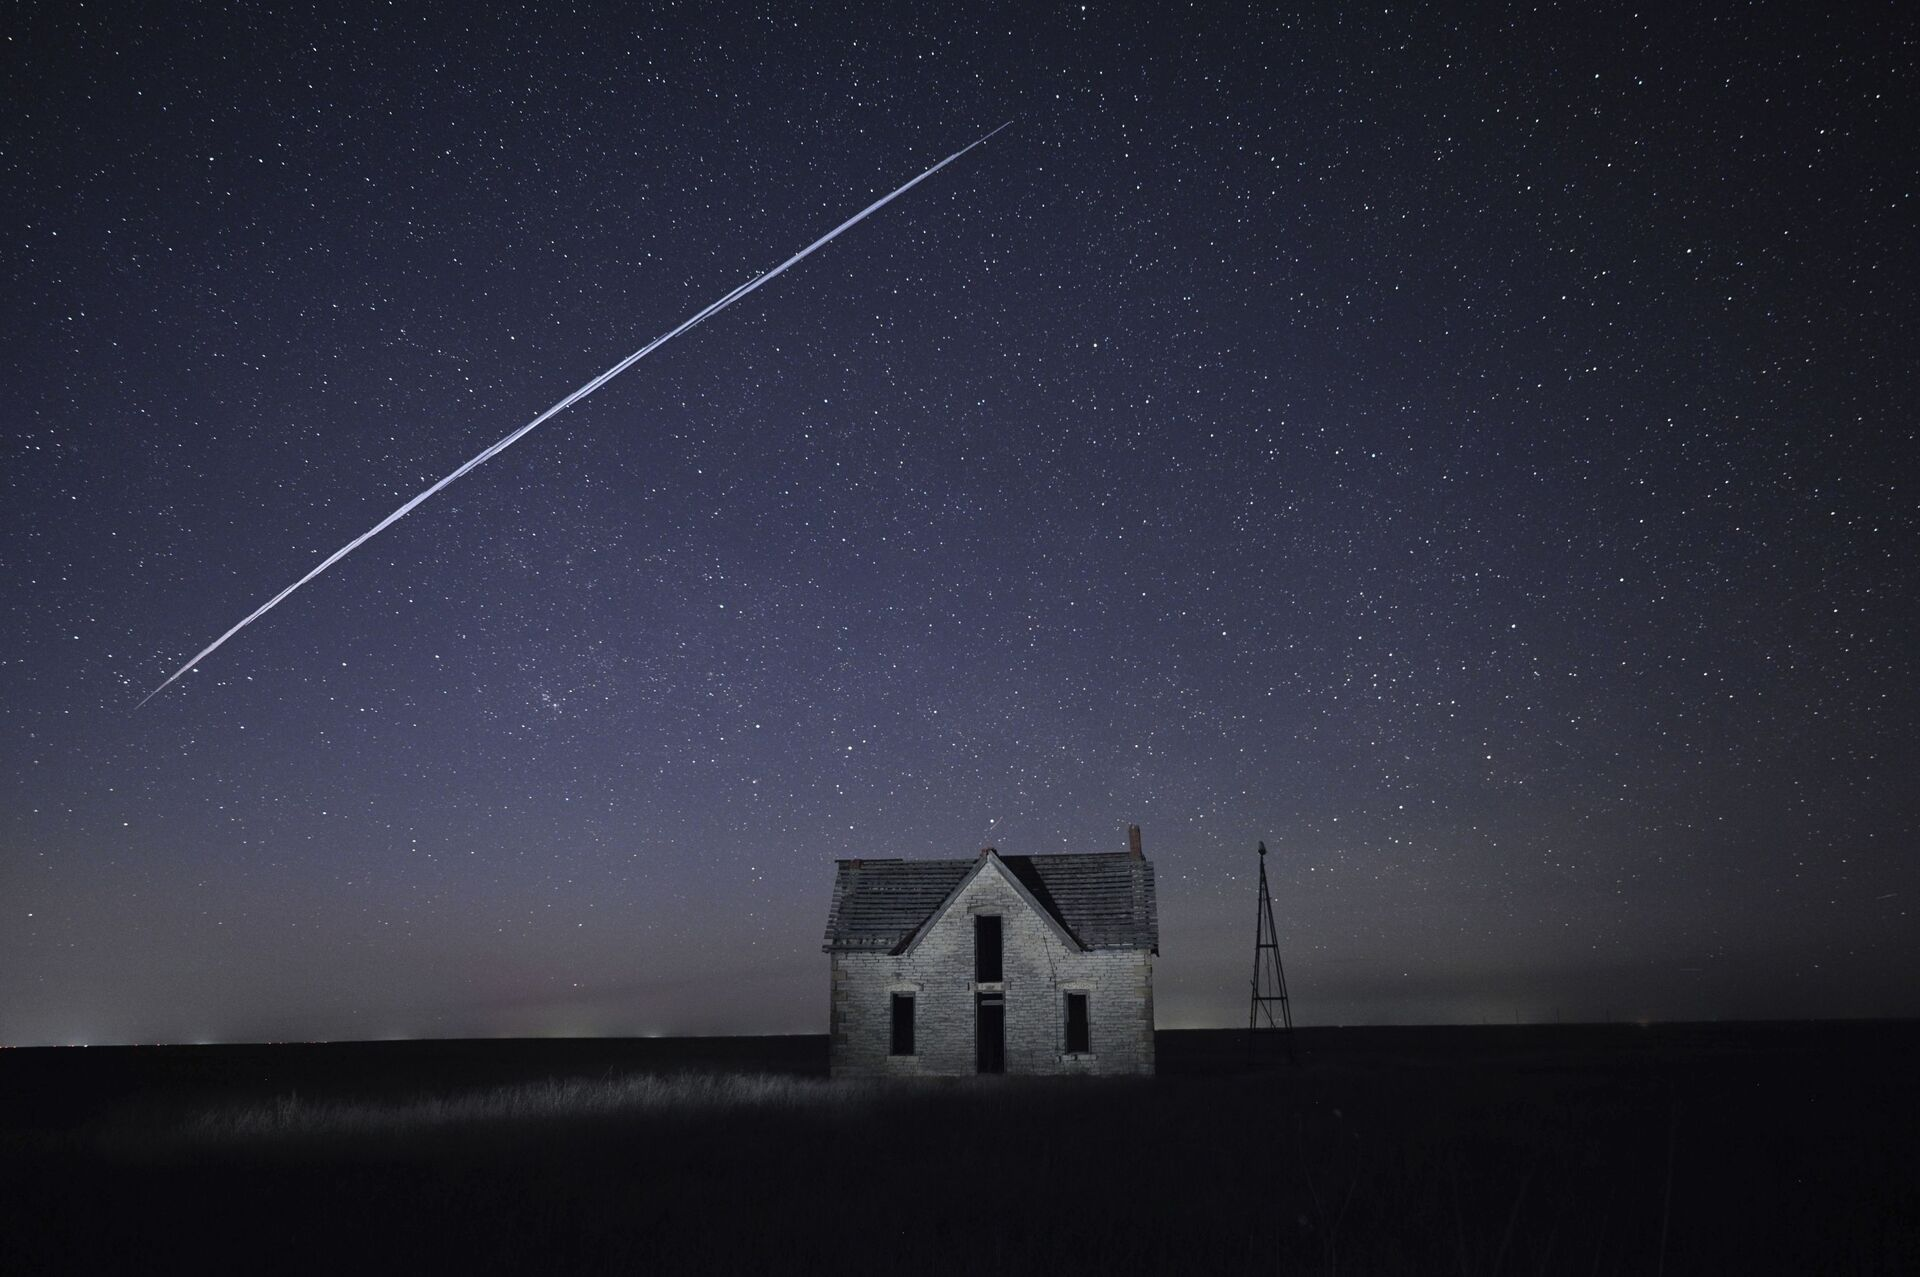 File-In this photo taken May 6, 2021, with a long exposure, a string of SpaceX StarLink satellites passes over an old stone house near Florence, Kan - Sputnik International, 1920, 07.09.2021